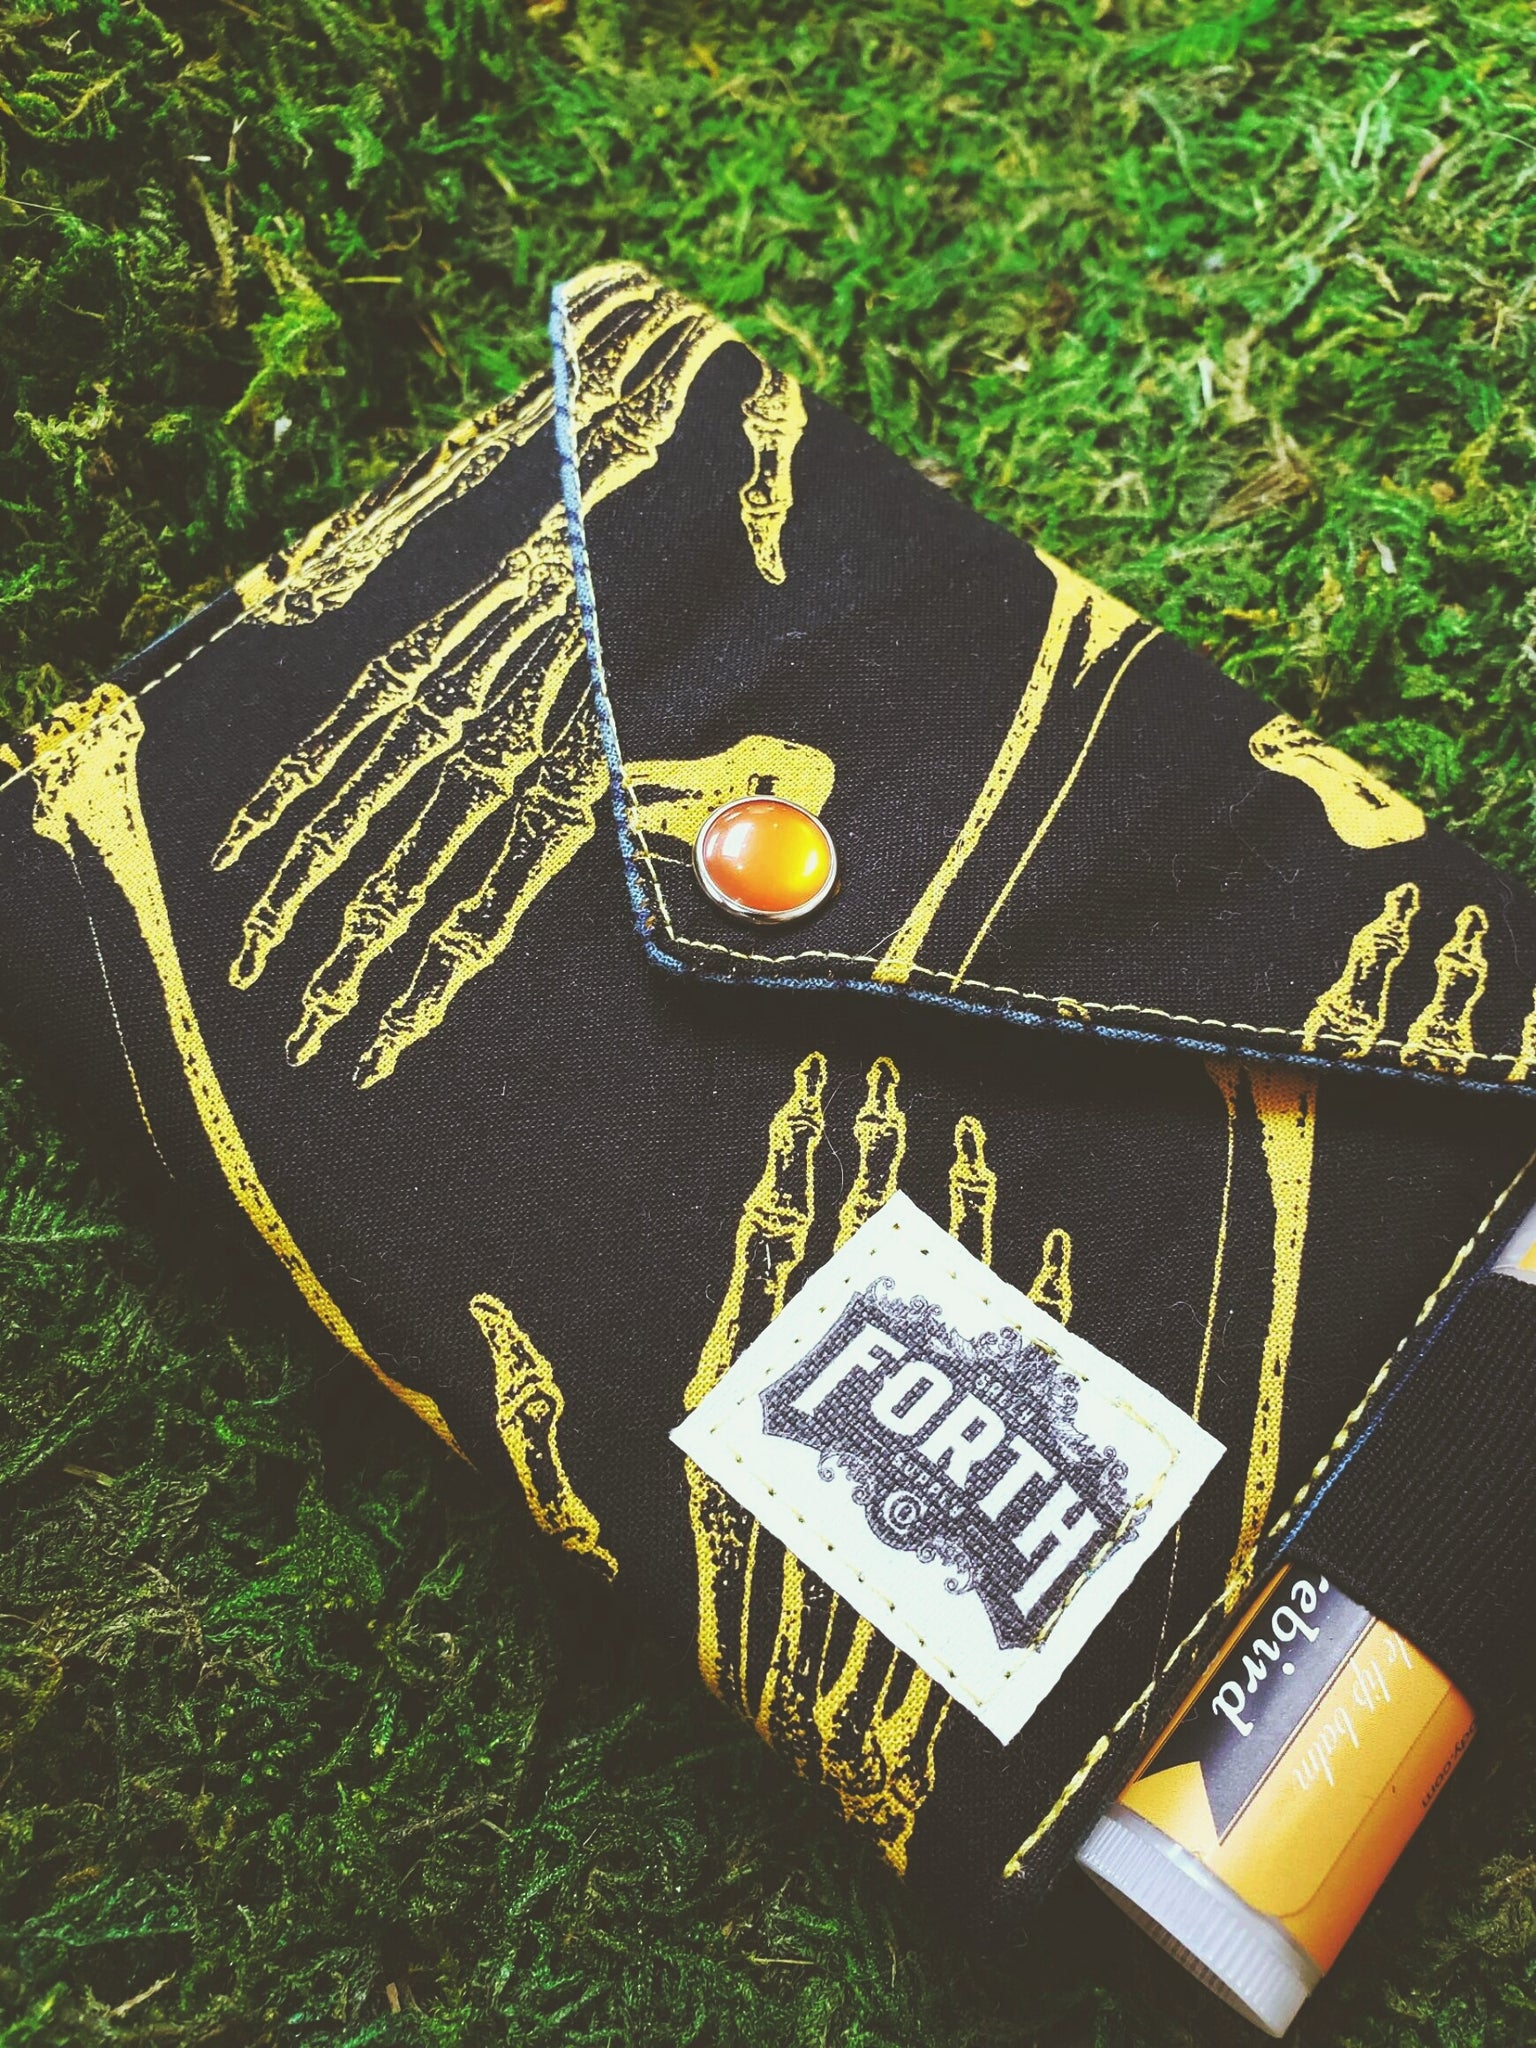 The Original Chap Stick Wallet! The Avail: Dem Bones - Sally Forth Supply Co.